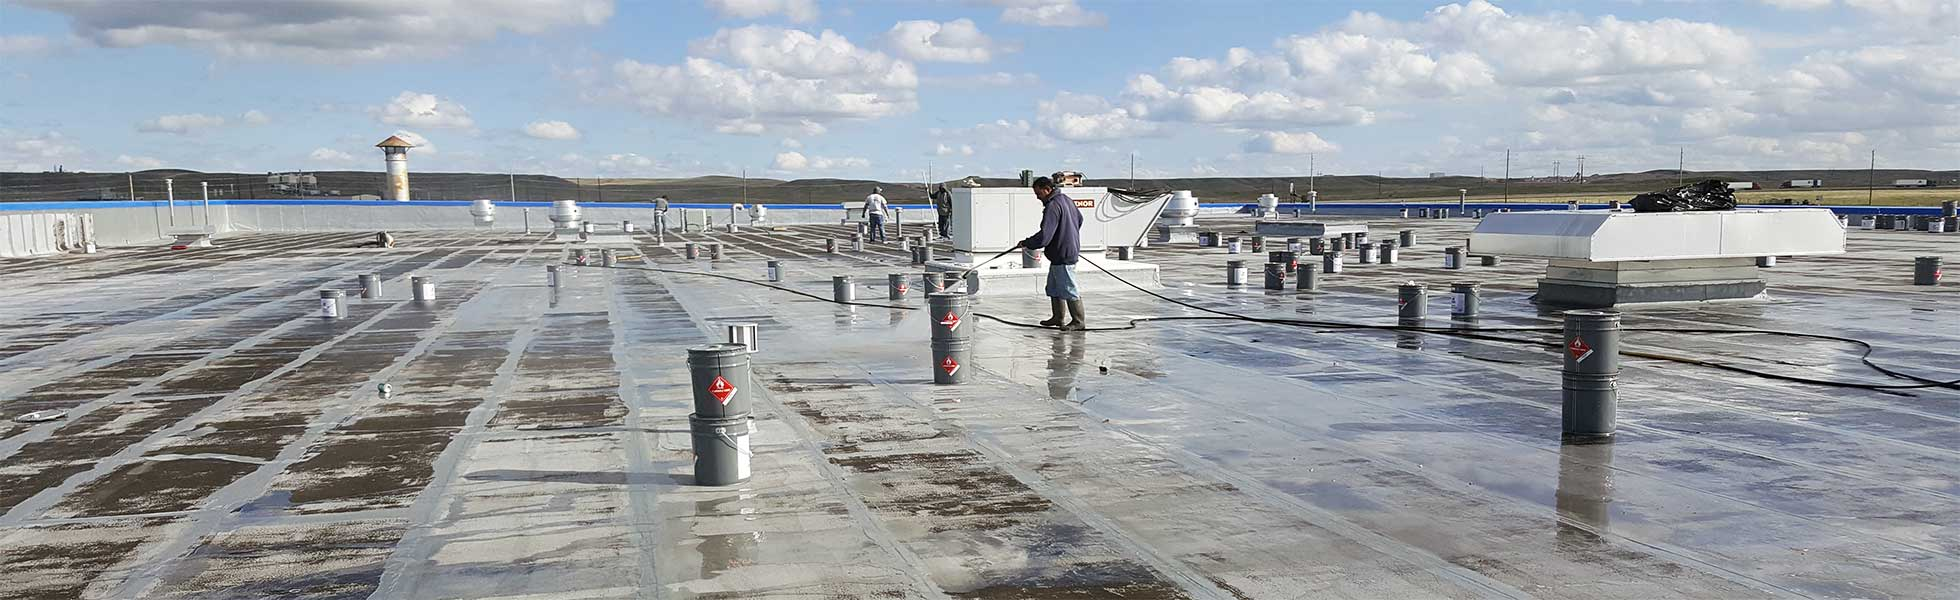 Welcome to the roof coating contractors of america network for Contractors network